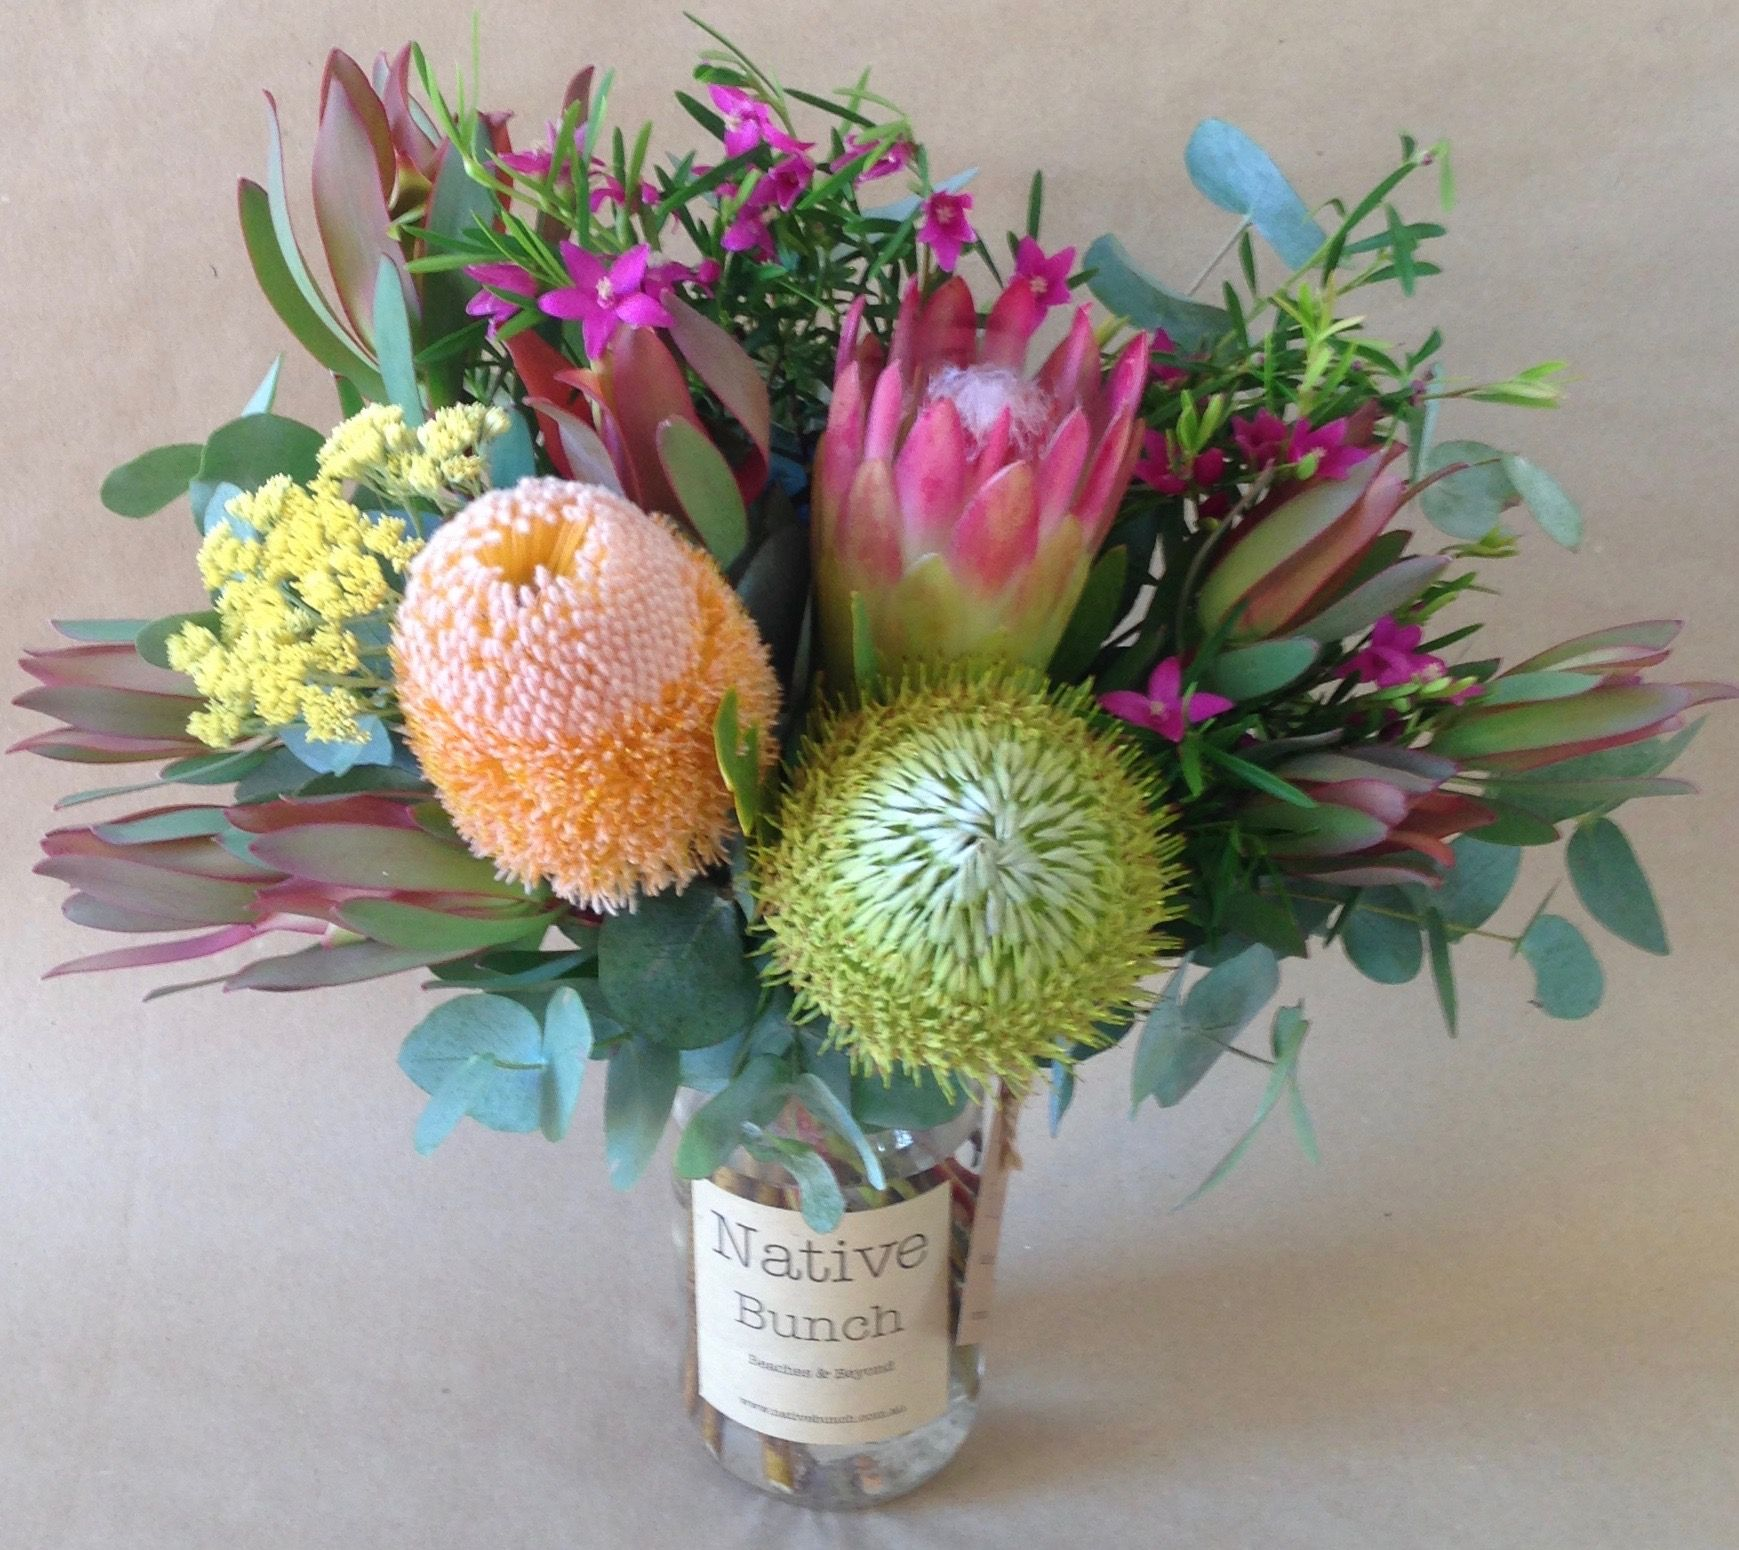 Native Flowers Banksia Protea Repens Crowea Leucadendrons Cassinea Eucalyptus Posy In A Jar Flower Delivery Flower Arrangements Floral Shop